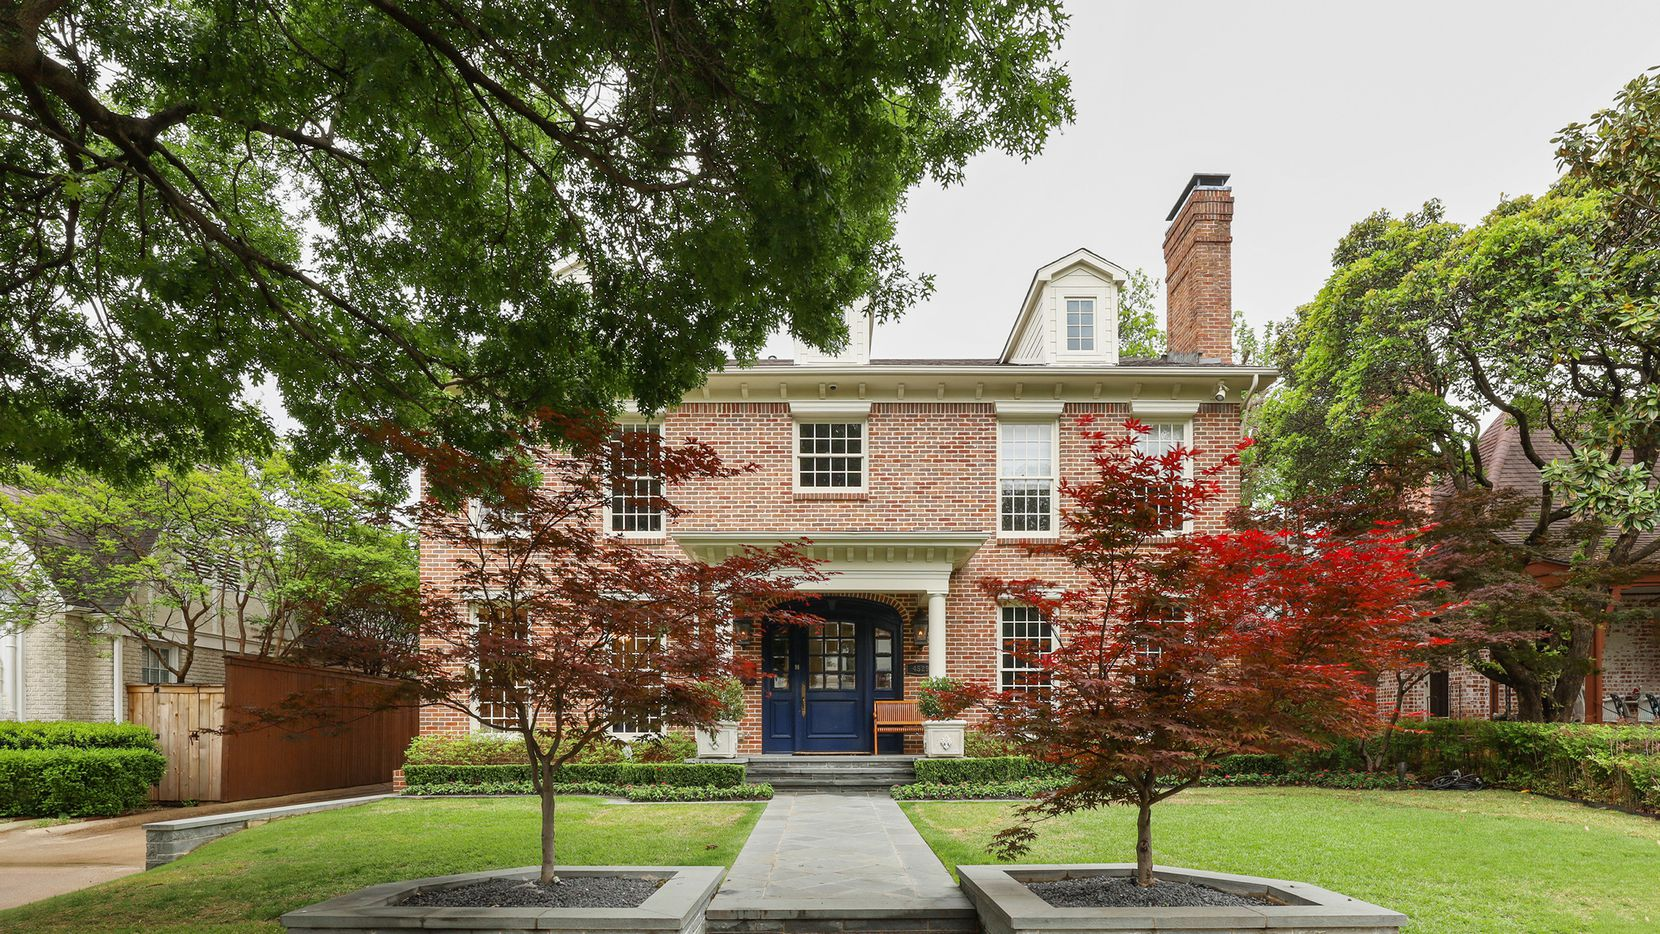 If the Highland Park Independent School District is your goal, the five-bedroom home at 4529 N. Versailles Ave. might be your destination.